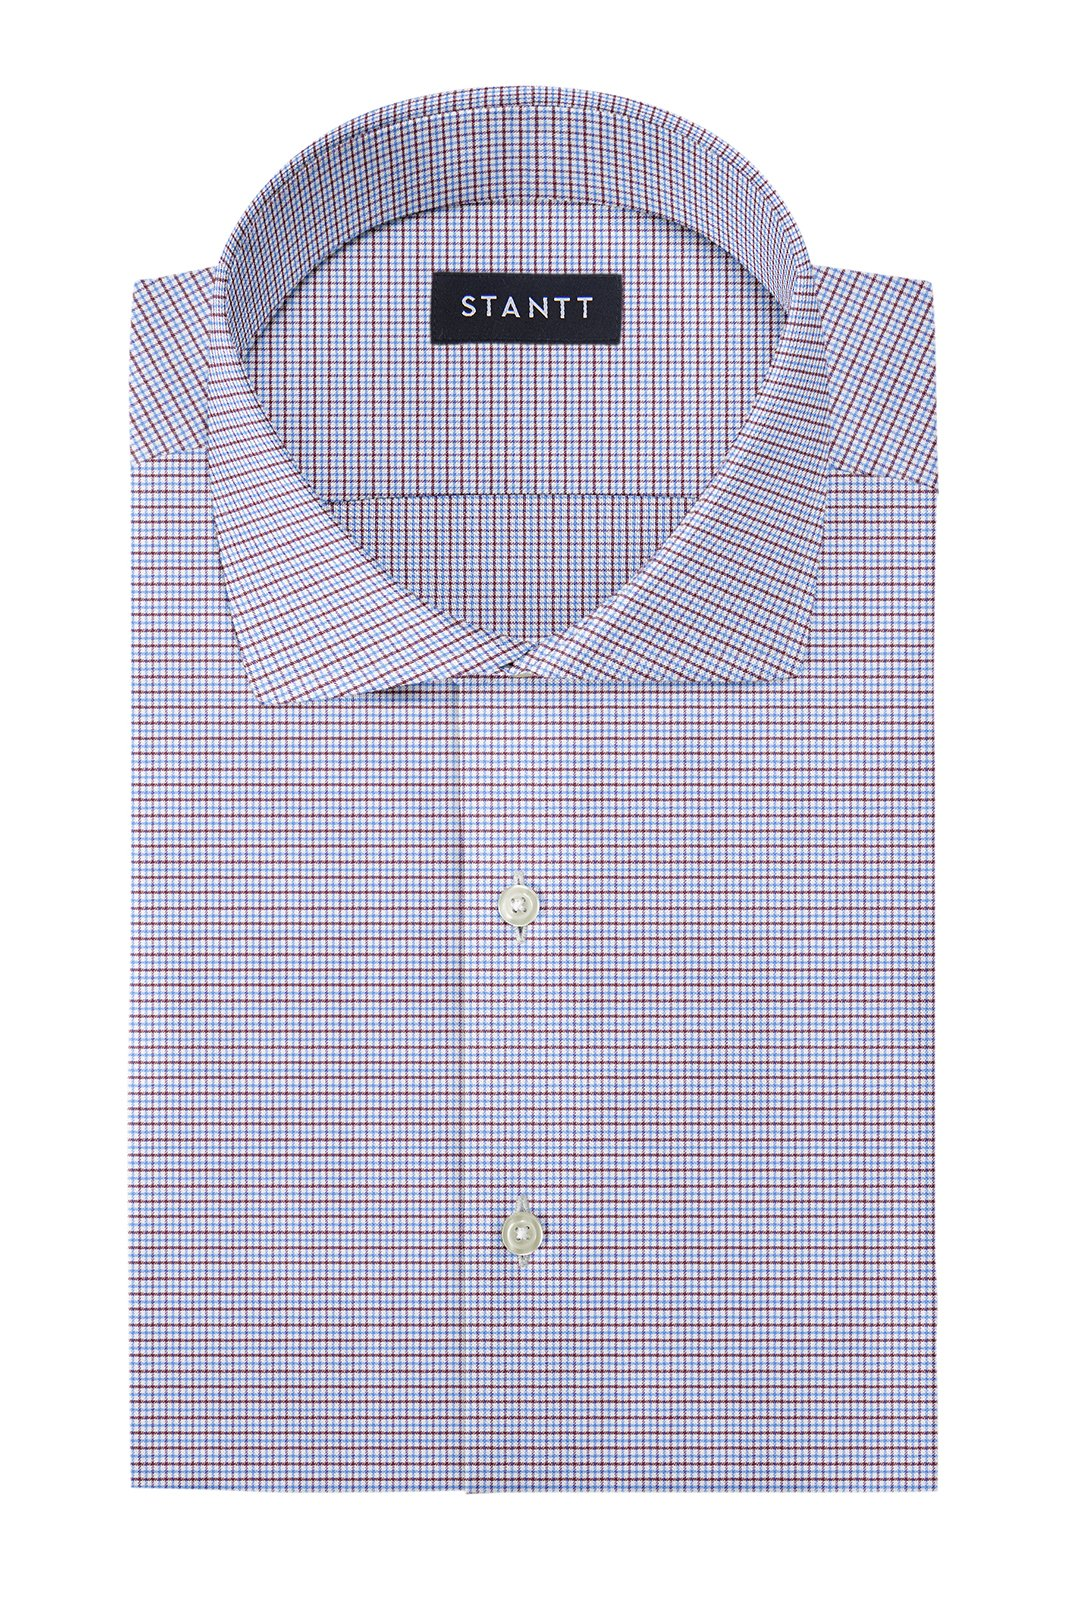 Performance Blue and Brown Mini Tattersall: Cutaway Collar, French Cuff